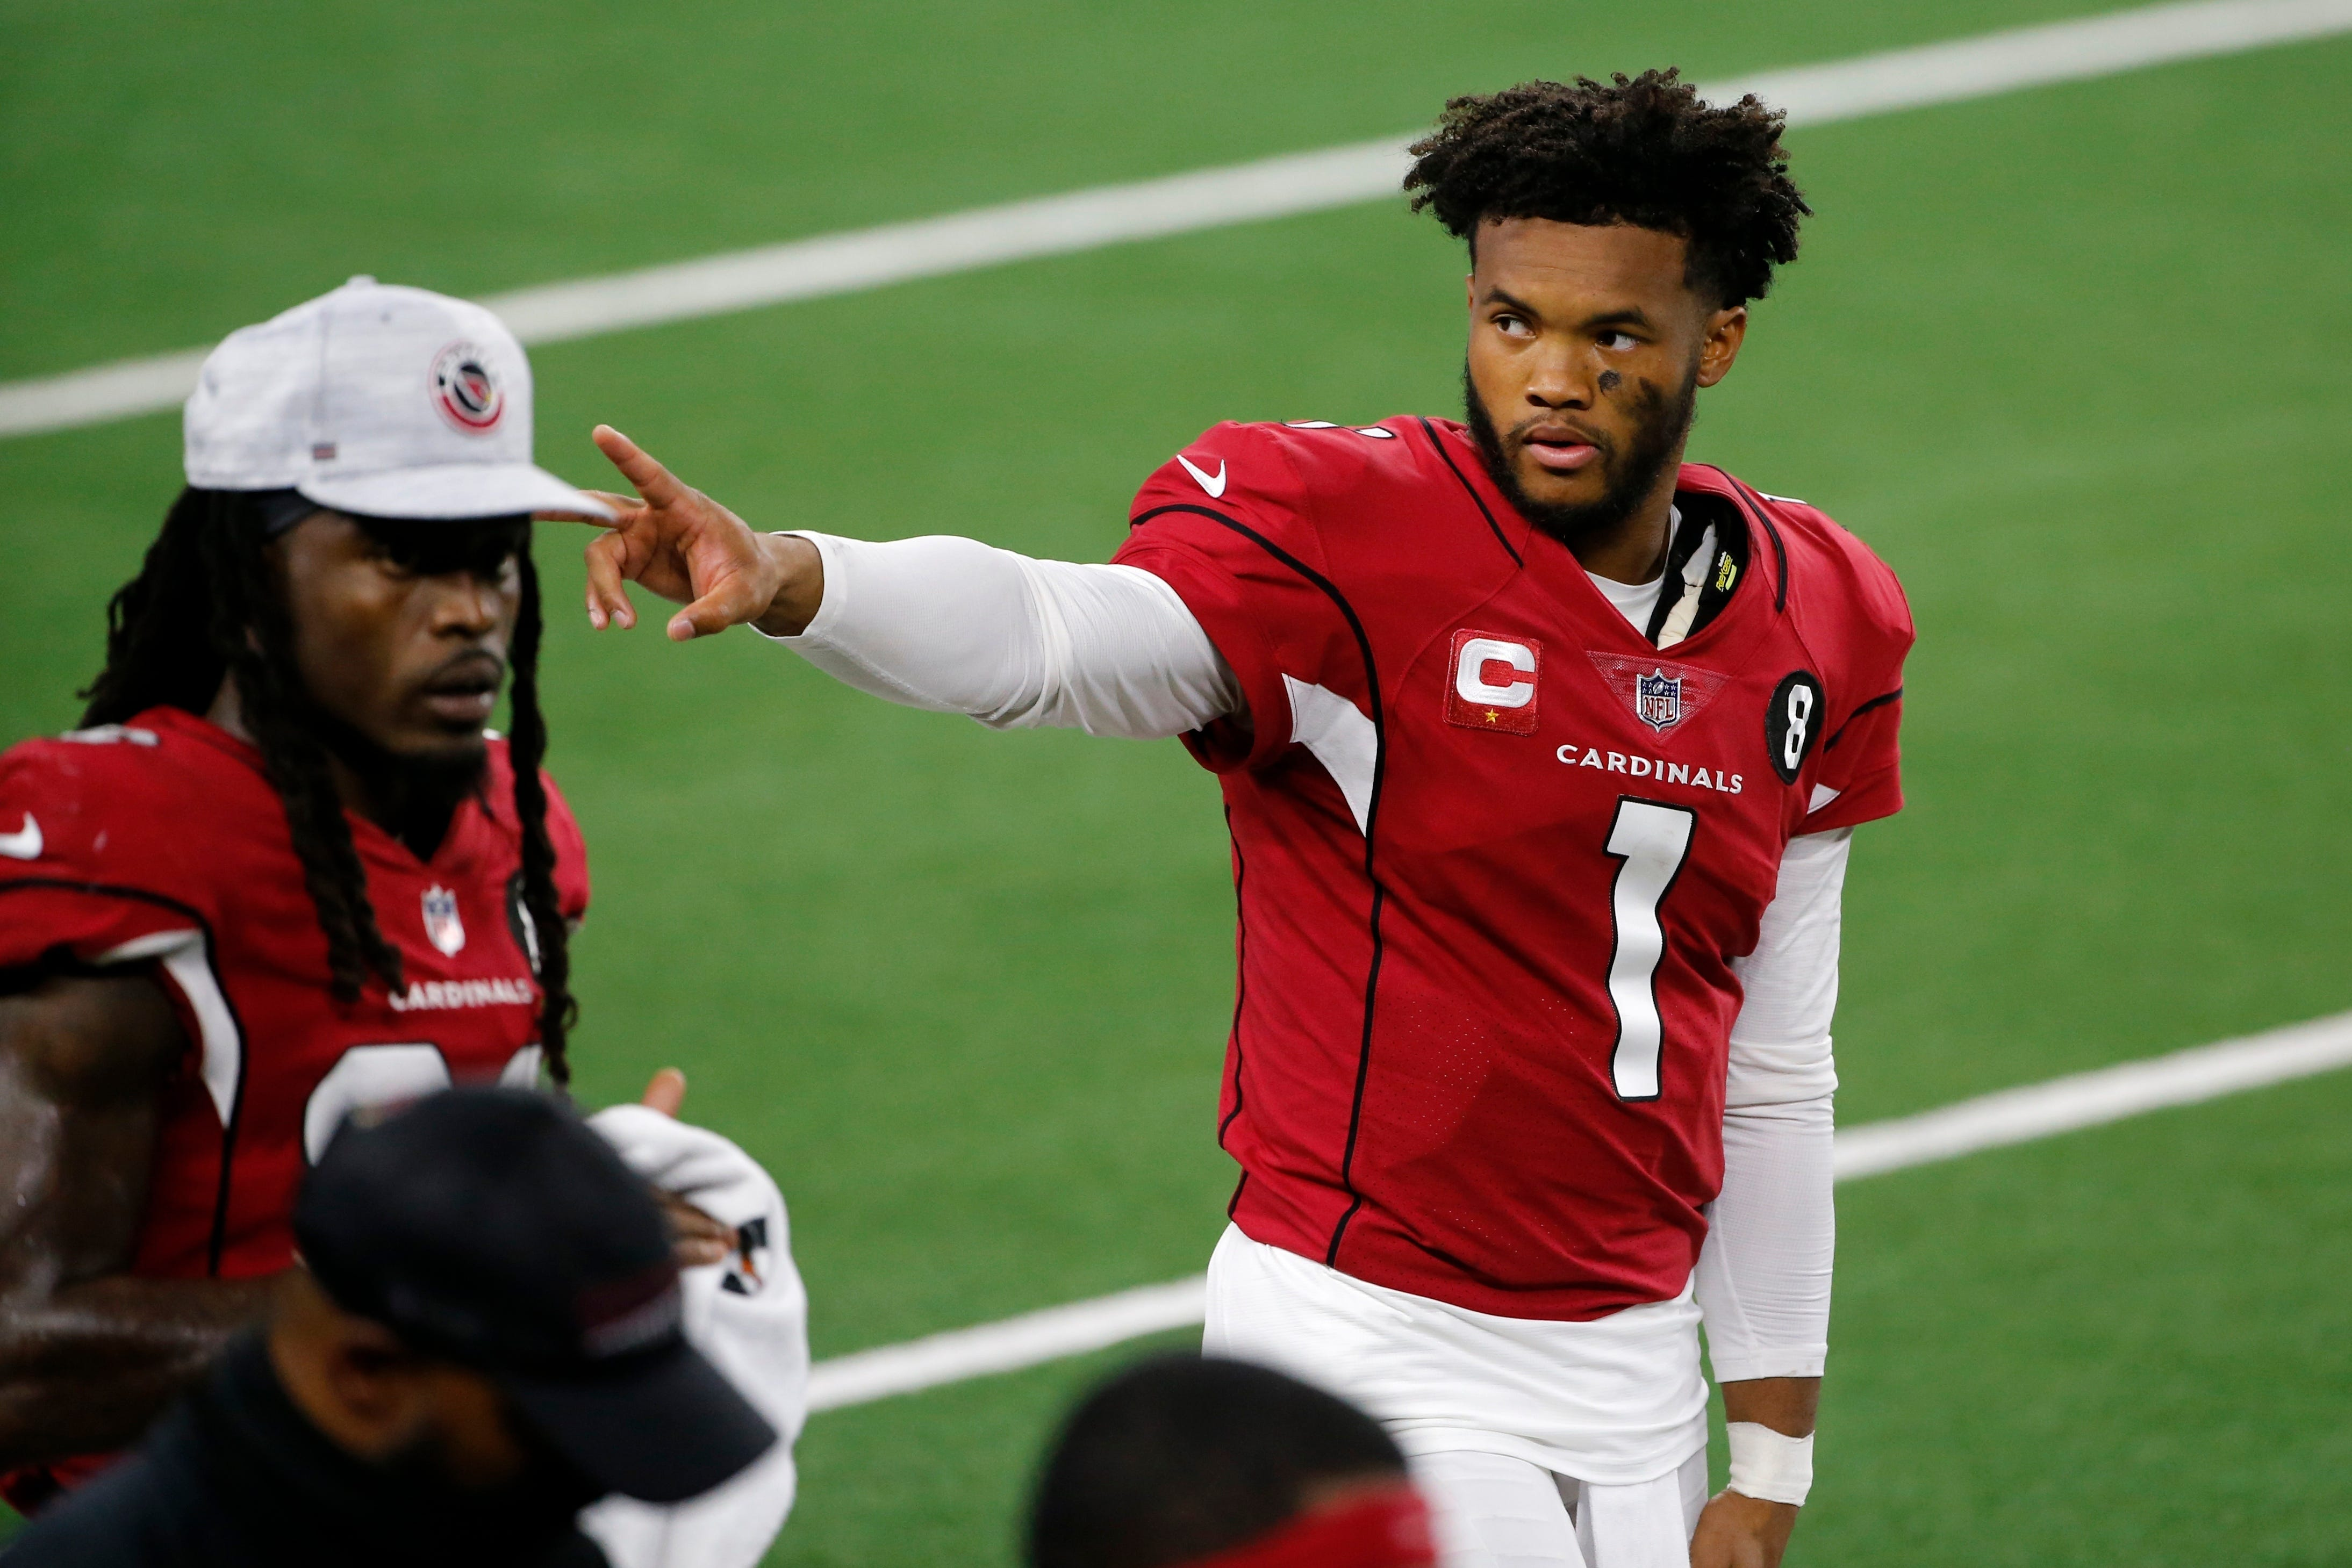 Opinion: Kyler Murray puts his feet up and makes himself at home in AT&T Stadium (again)